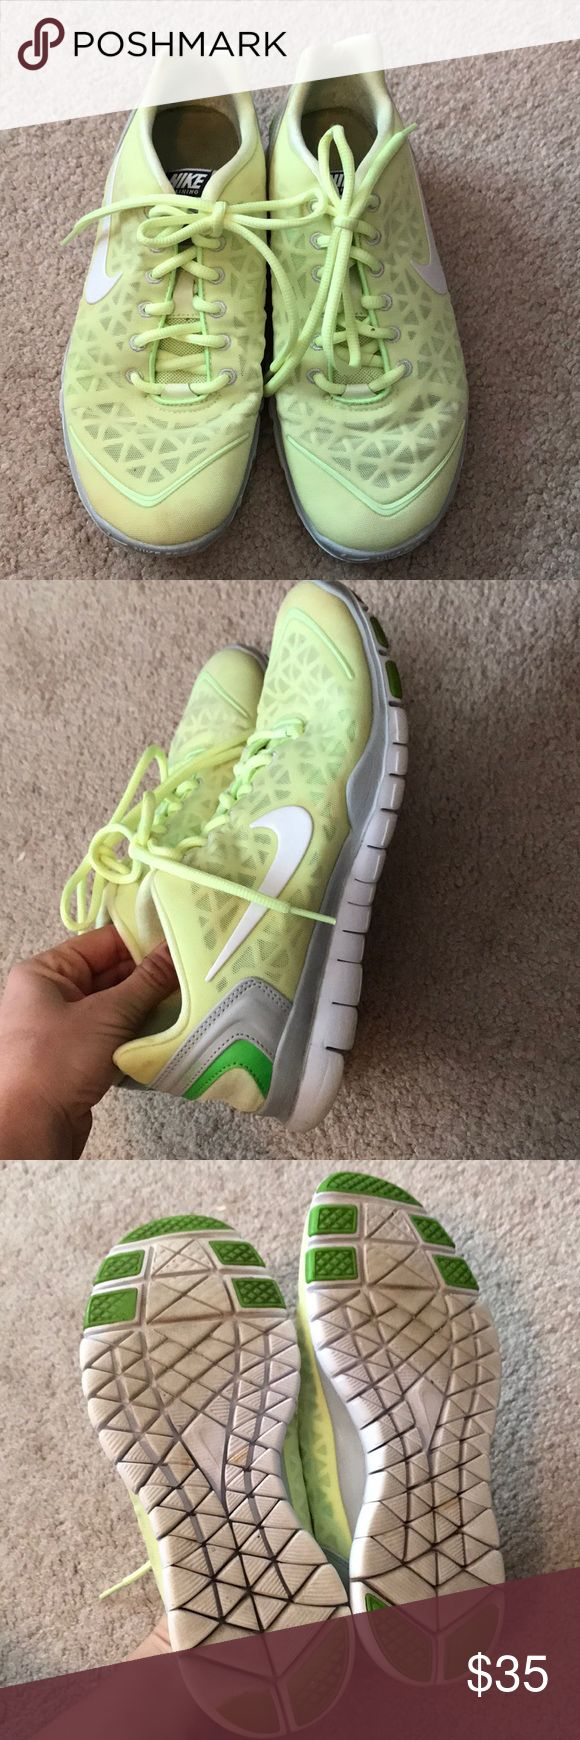 Nike free shoe Pistachio green Nike free athletic shoe. Size 7.5. Moderately loved. Discoloration on toe area of one and footbed. Have been washed. Overall lots of life left, very comfortable and really cool color! Nike Shoes Athletic Shoes